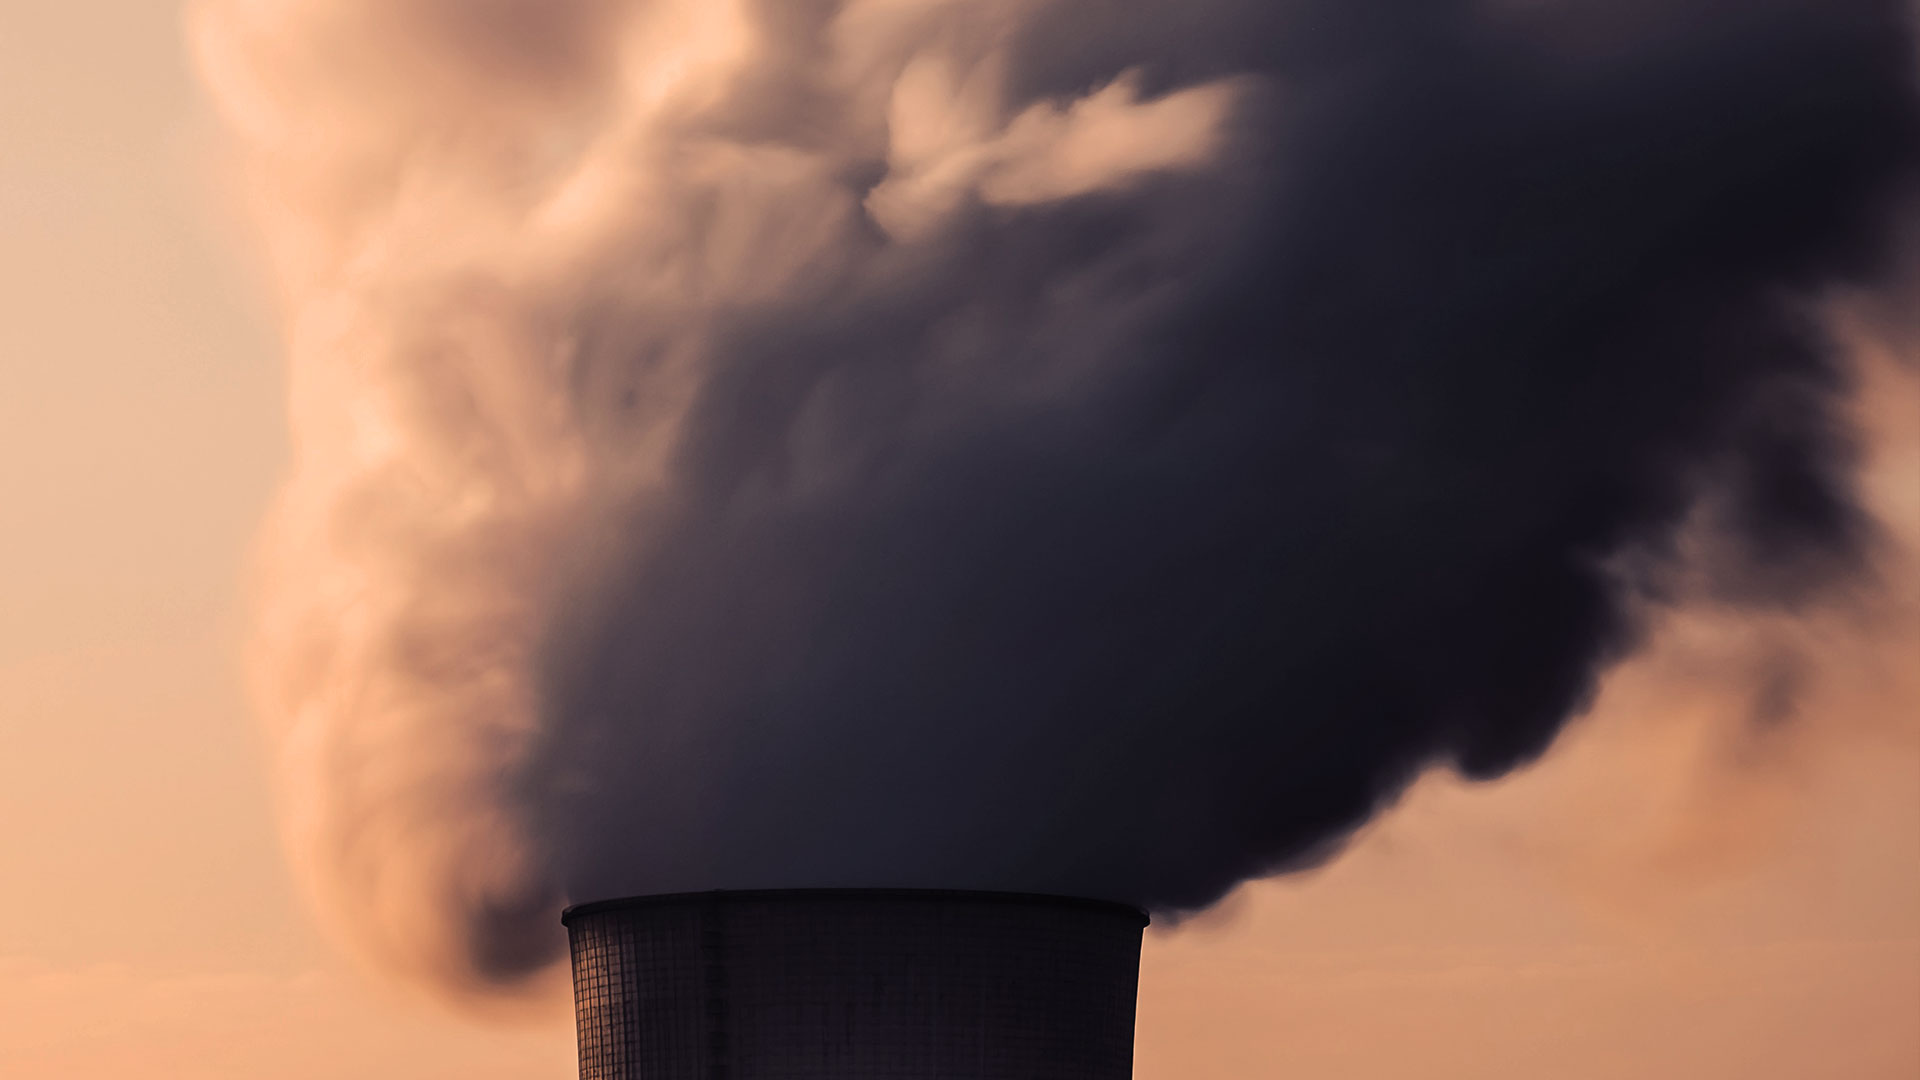 Fossil fueled power stations are major contributors to carbon emissions